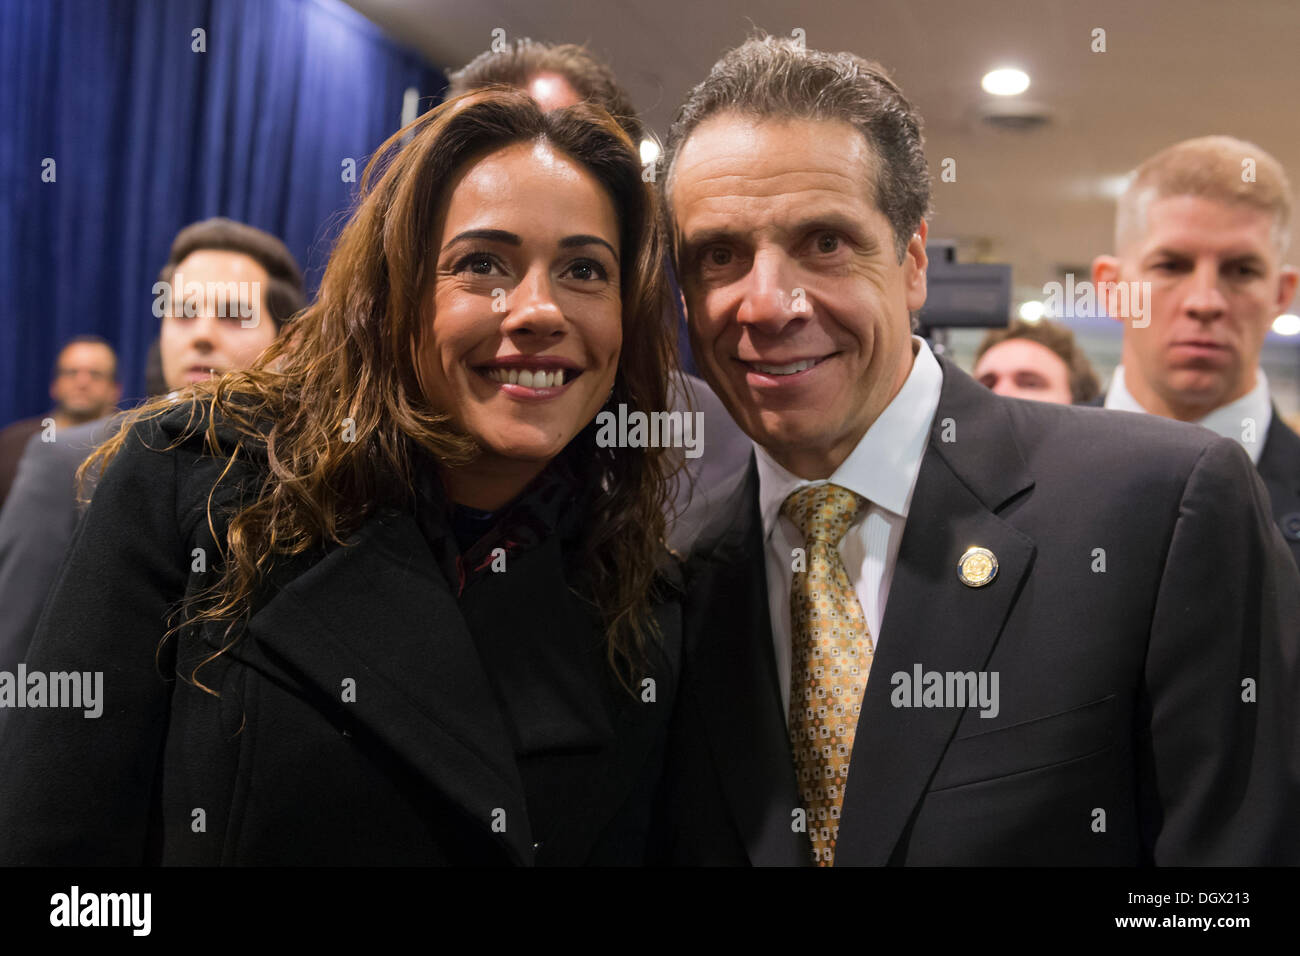 Albertson, New York, U.S. 26th October 2013. New York Governor ANDREW CUOMO, at right, poses for a photo after he endorses Suozzi for Nassau County Executive, with supporters, including veterans, union members, and Democratic candidates for office in Nassau and Suffoilk Counties in Long Island, filling the announcement room at the Albertson Veterans of Foreign Wars VFW Post. Democrat Suozzi, the former Nassau County Executive, and Republican encumbant Mangano face each other in a rematch in the upcoming November 5th election. © Ann E Parry/Alamy Live News - Stock Image